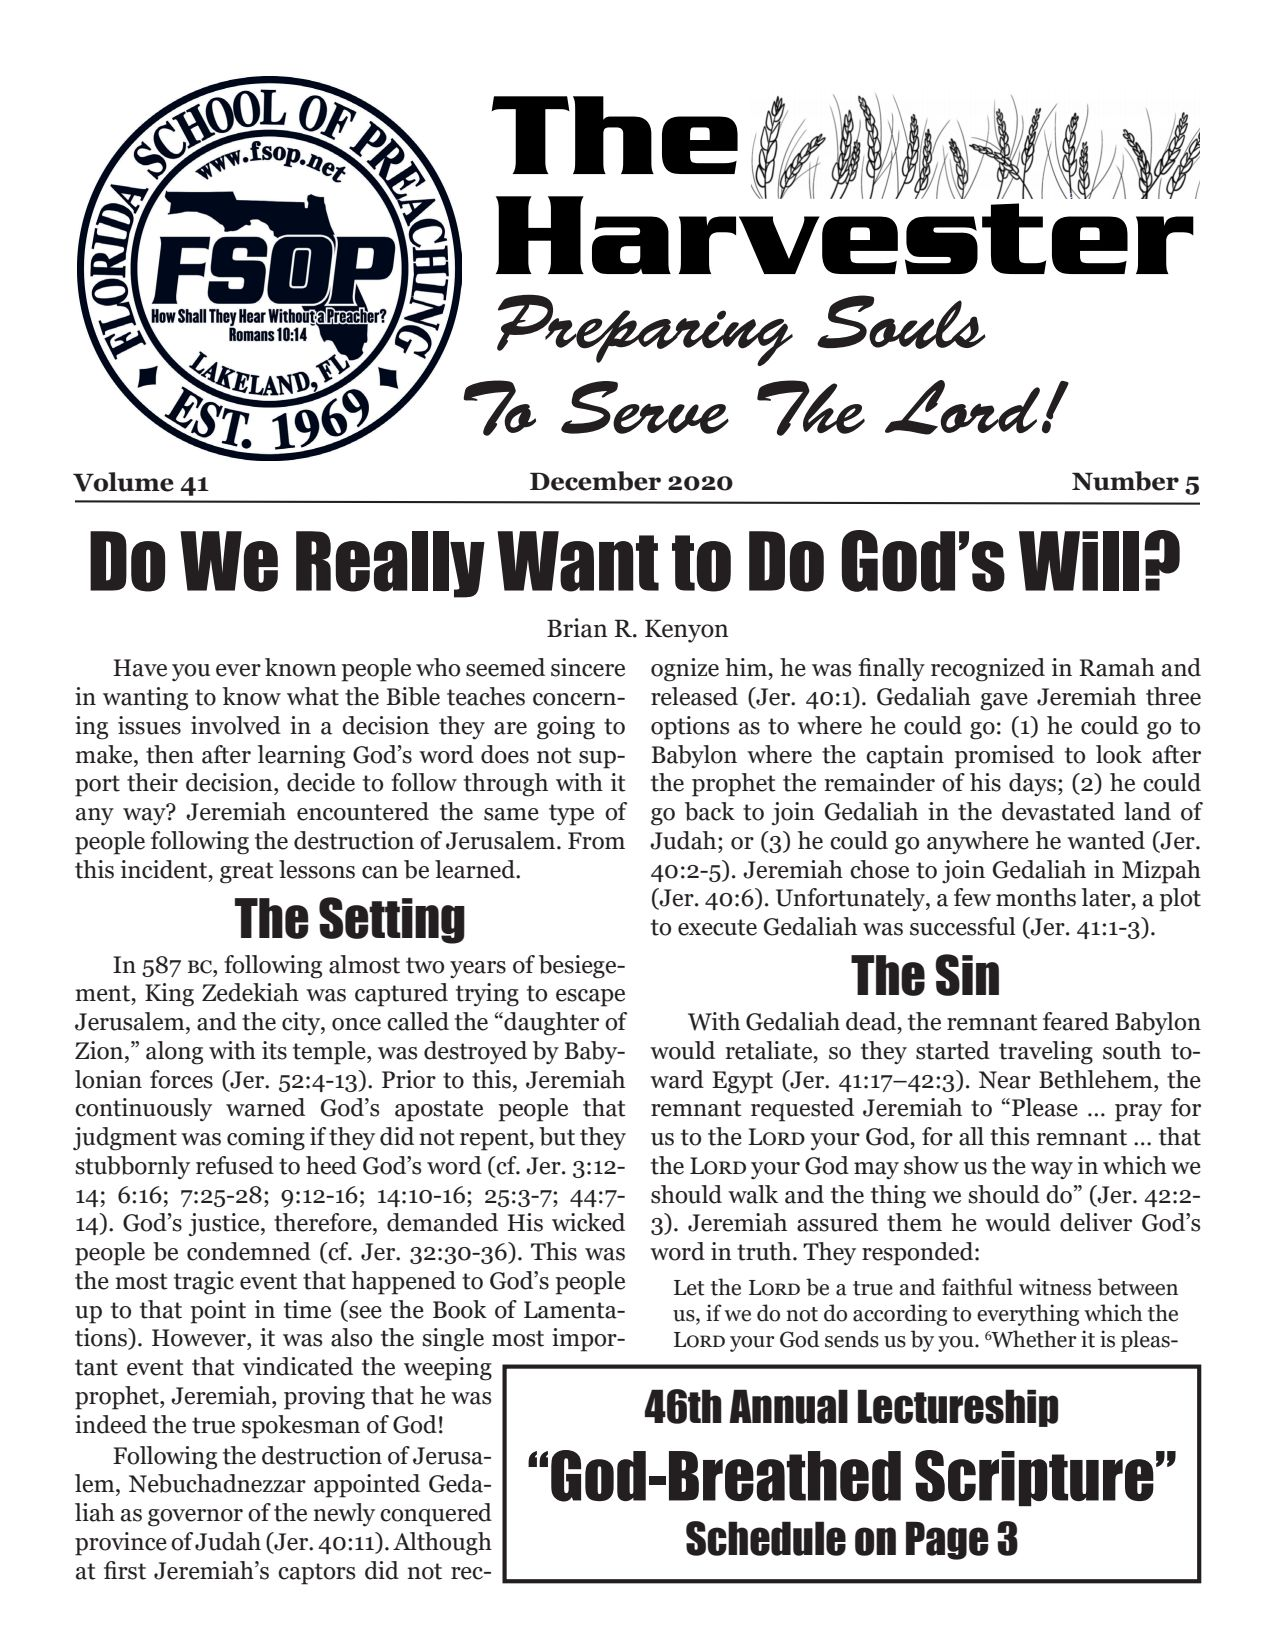 """Featured image for """"Harvester December 2020: Do We Really Want to Do God's Will?"""""""